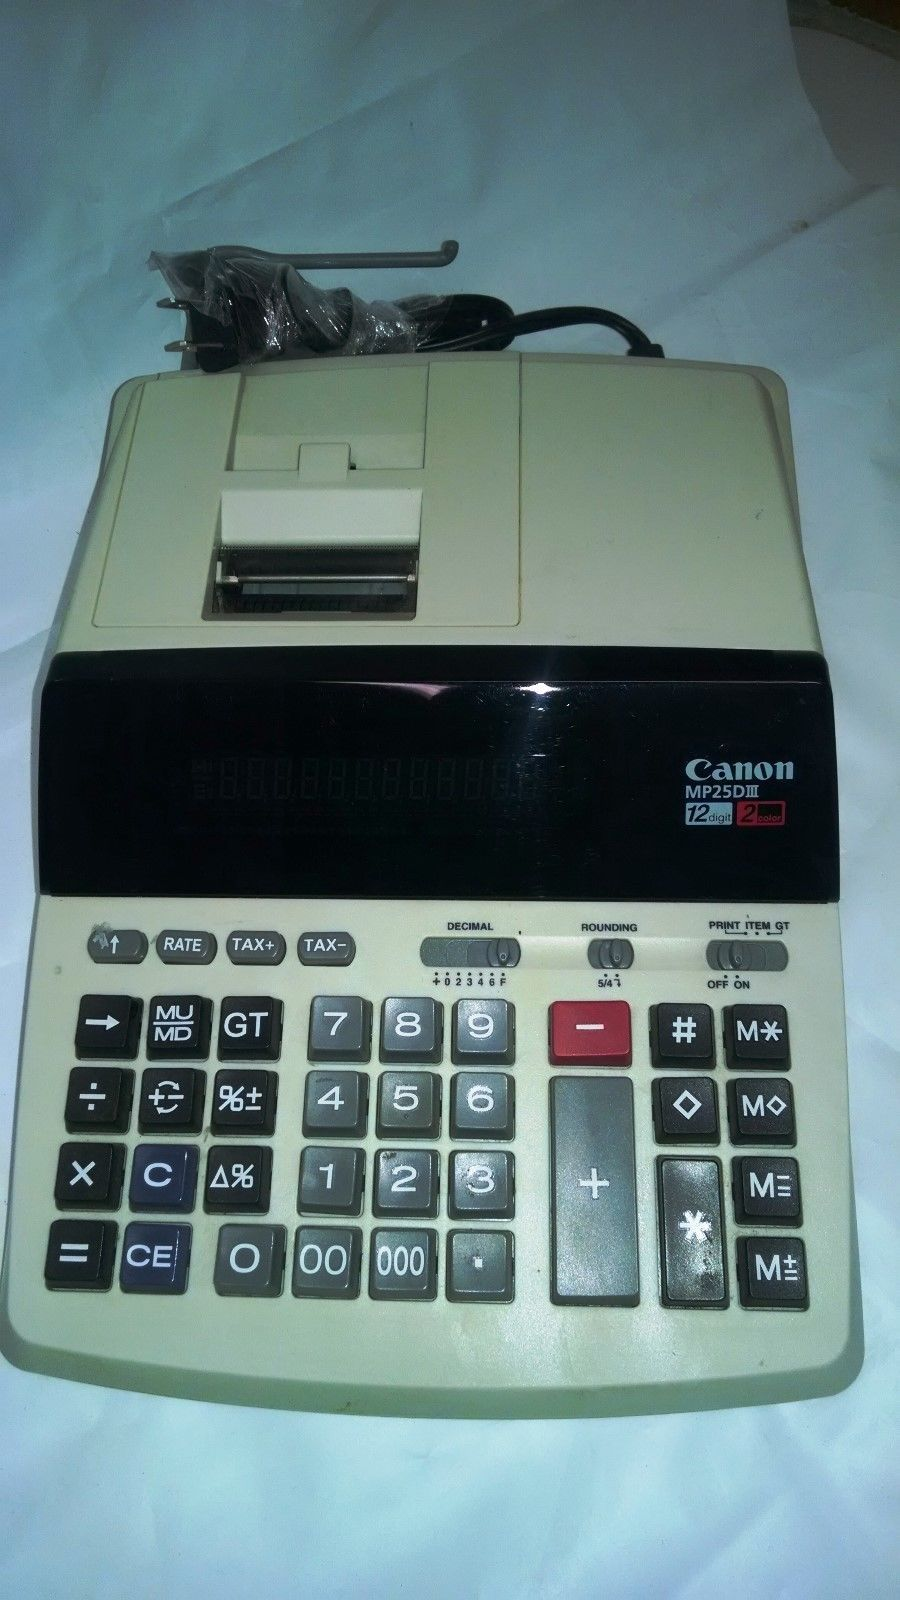 Canon MP25DIII 2 Color 12 Digit Printing Calculator Tested Working | eBay